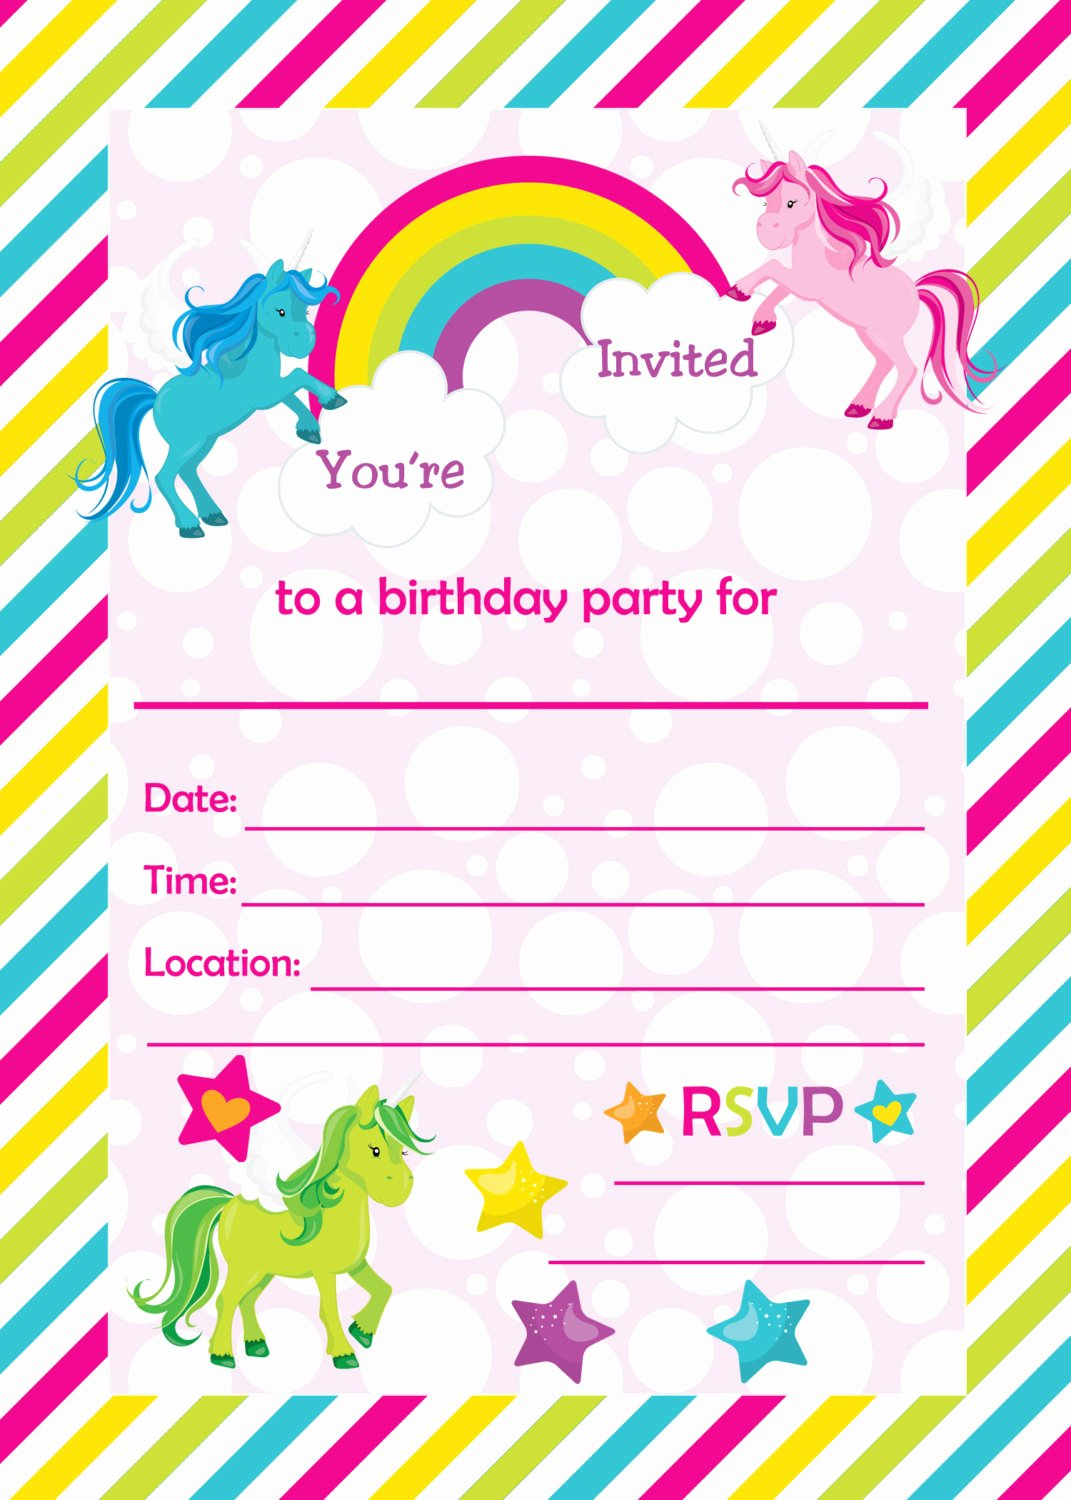 Printable Party Invitation Template Beautiful Free Printable Golden Unicorn Birthday Invitation Template